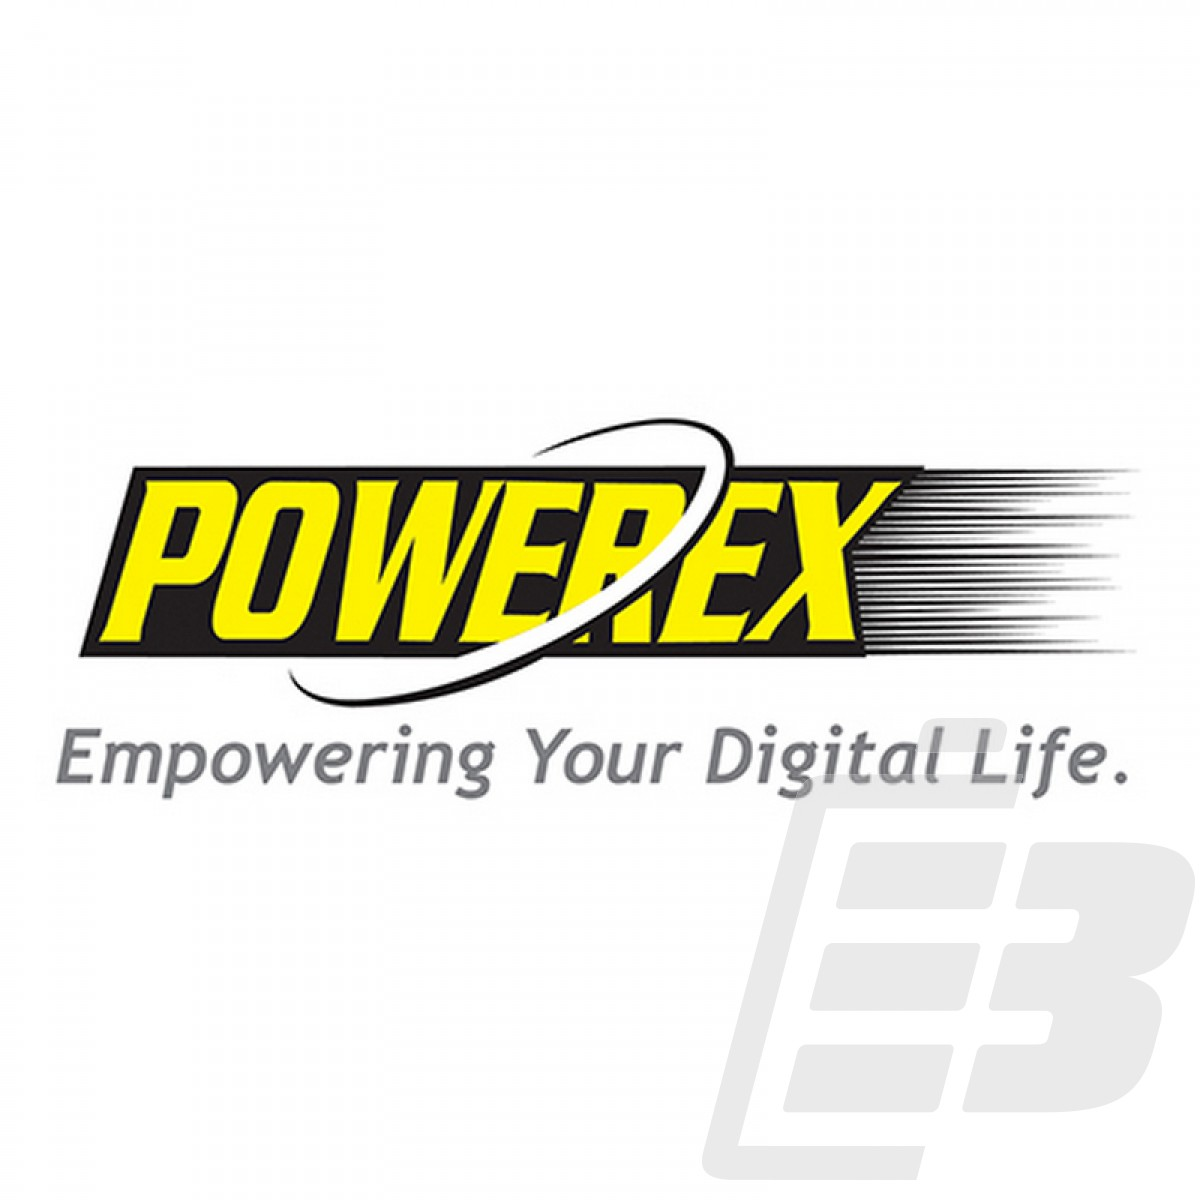 Image result for powerex